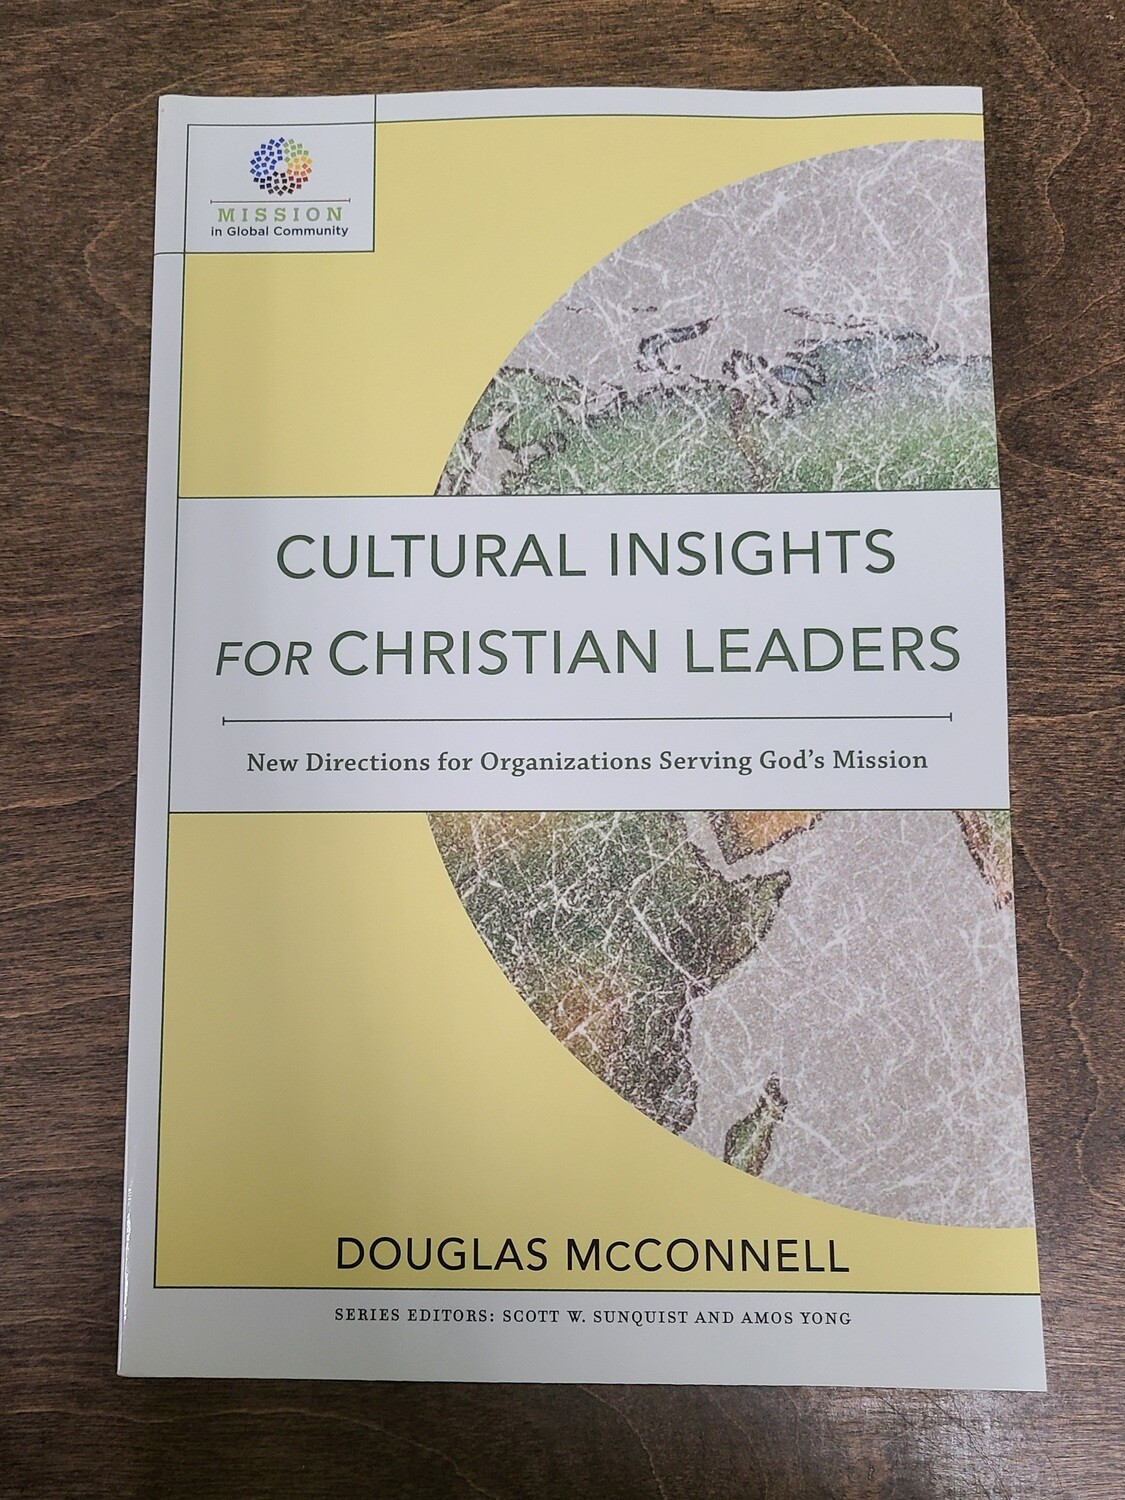 Cultural Insights for Christian Leaders by Douglas McConnell